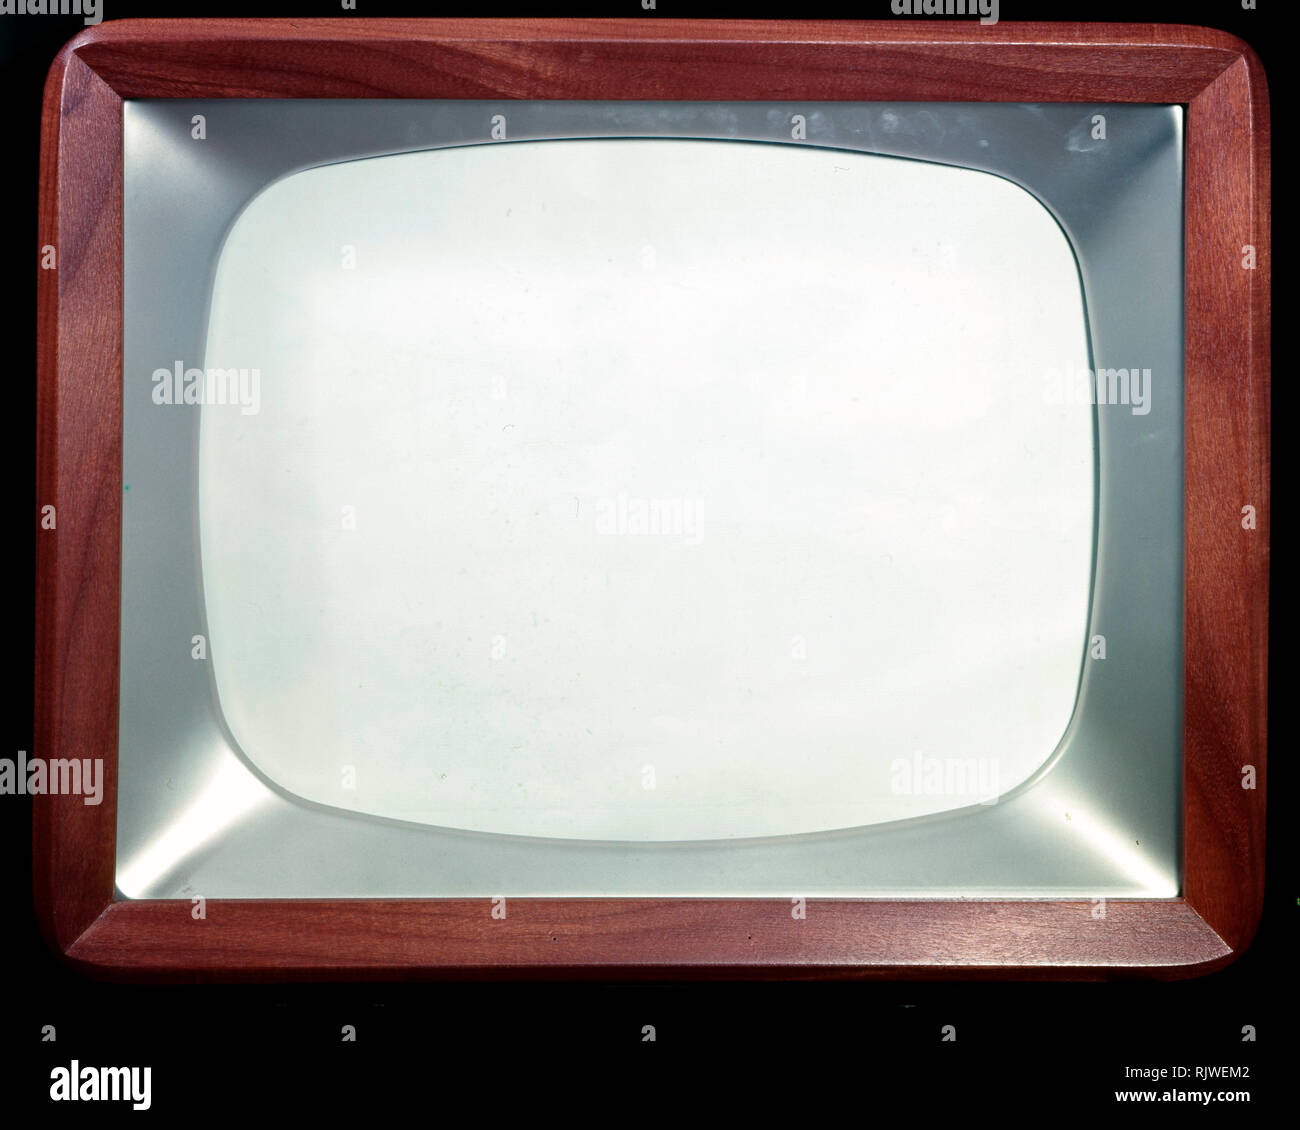 Television in the 1950s. A typical tv furniture in a wooden casing with a small tv-screen. 1958 - Stock Image